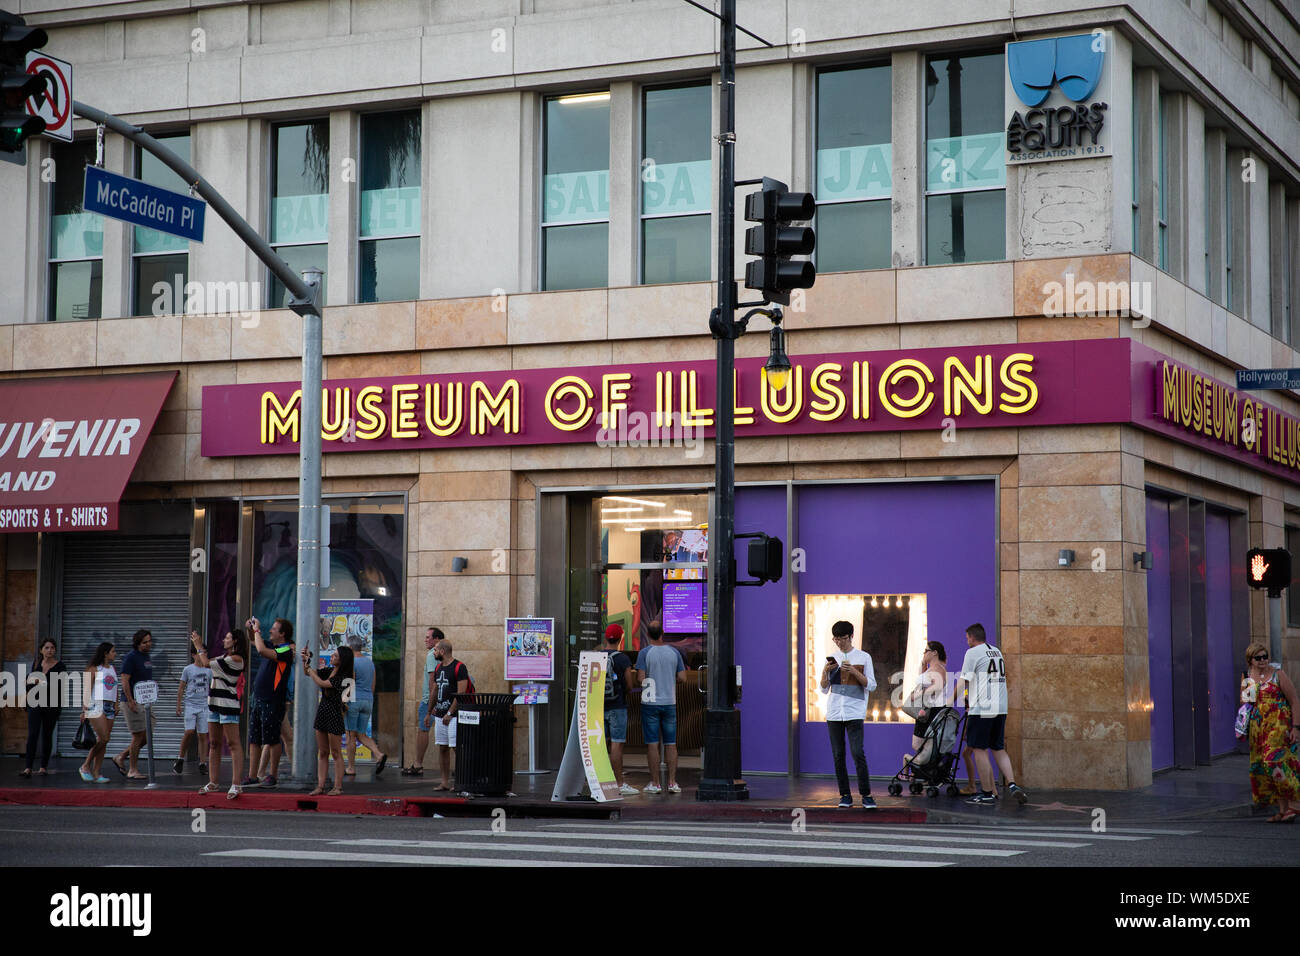 08/14/2019 - Los Angeles, CA: Museum of Illusions on Hollywood blvd in Los Angeles, USA Stock Photo